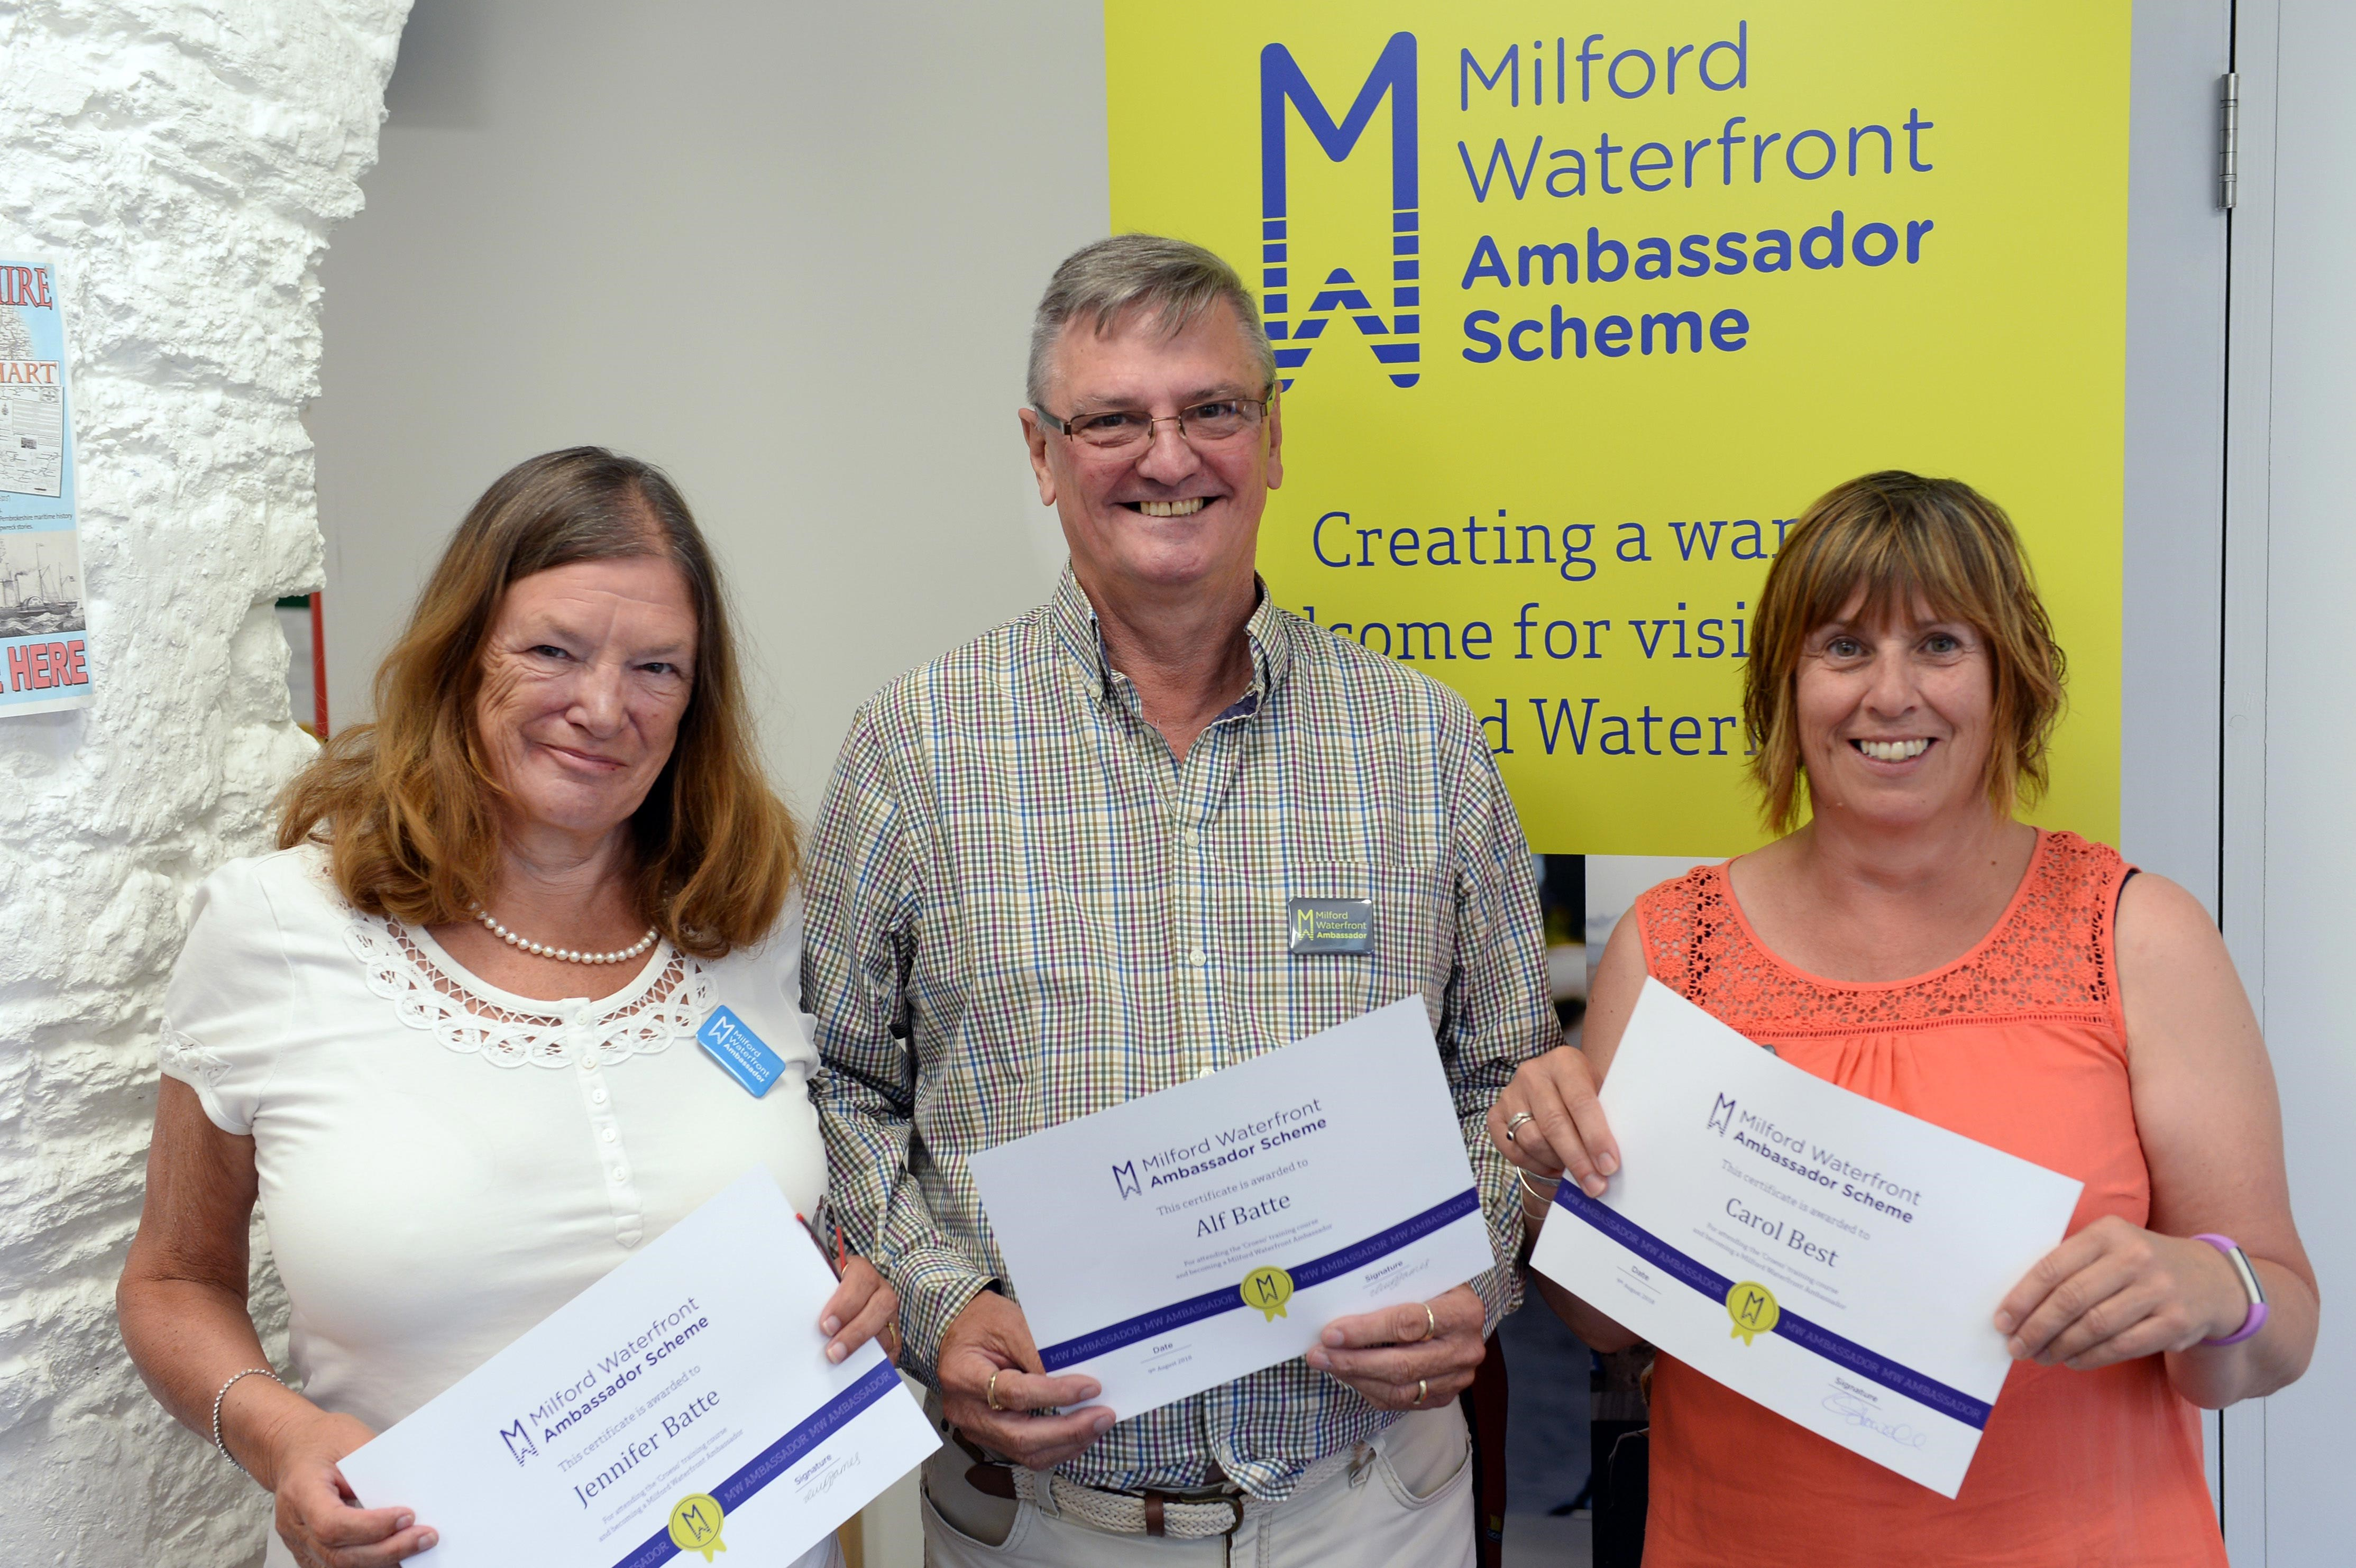 Milford Waterfront Ambassadors at Milford Haven Museum